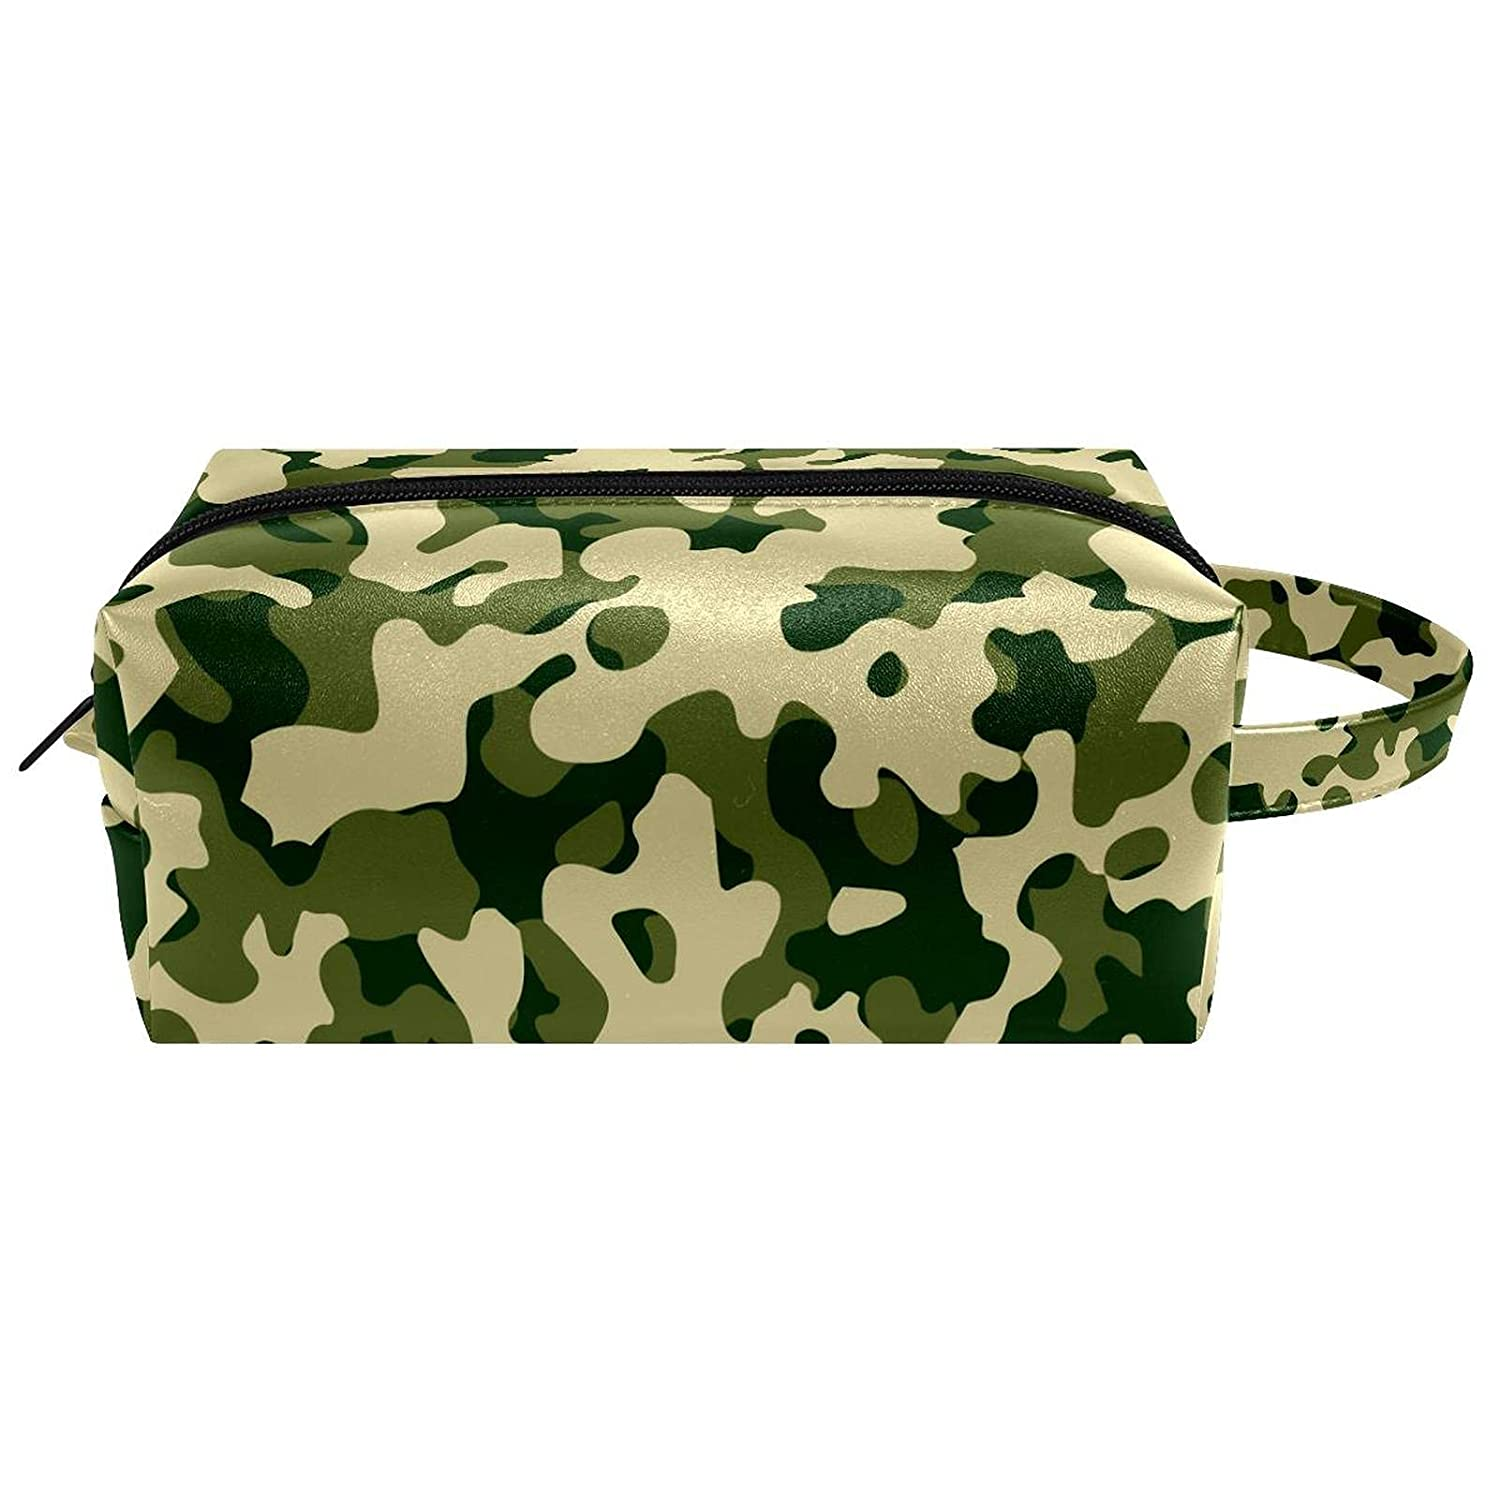 Cheap super special price Large Travel Cosmetic Bag For Green Tra Sales for sale Pattern Camouflage Women